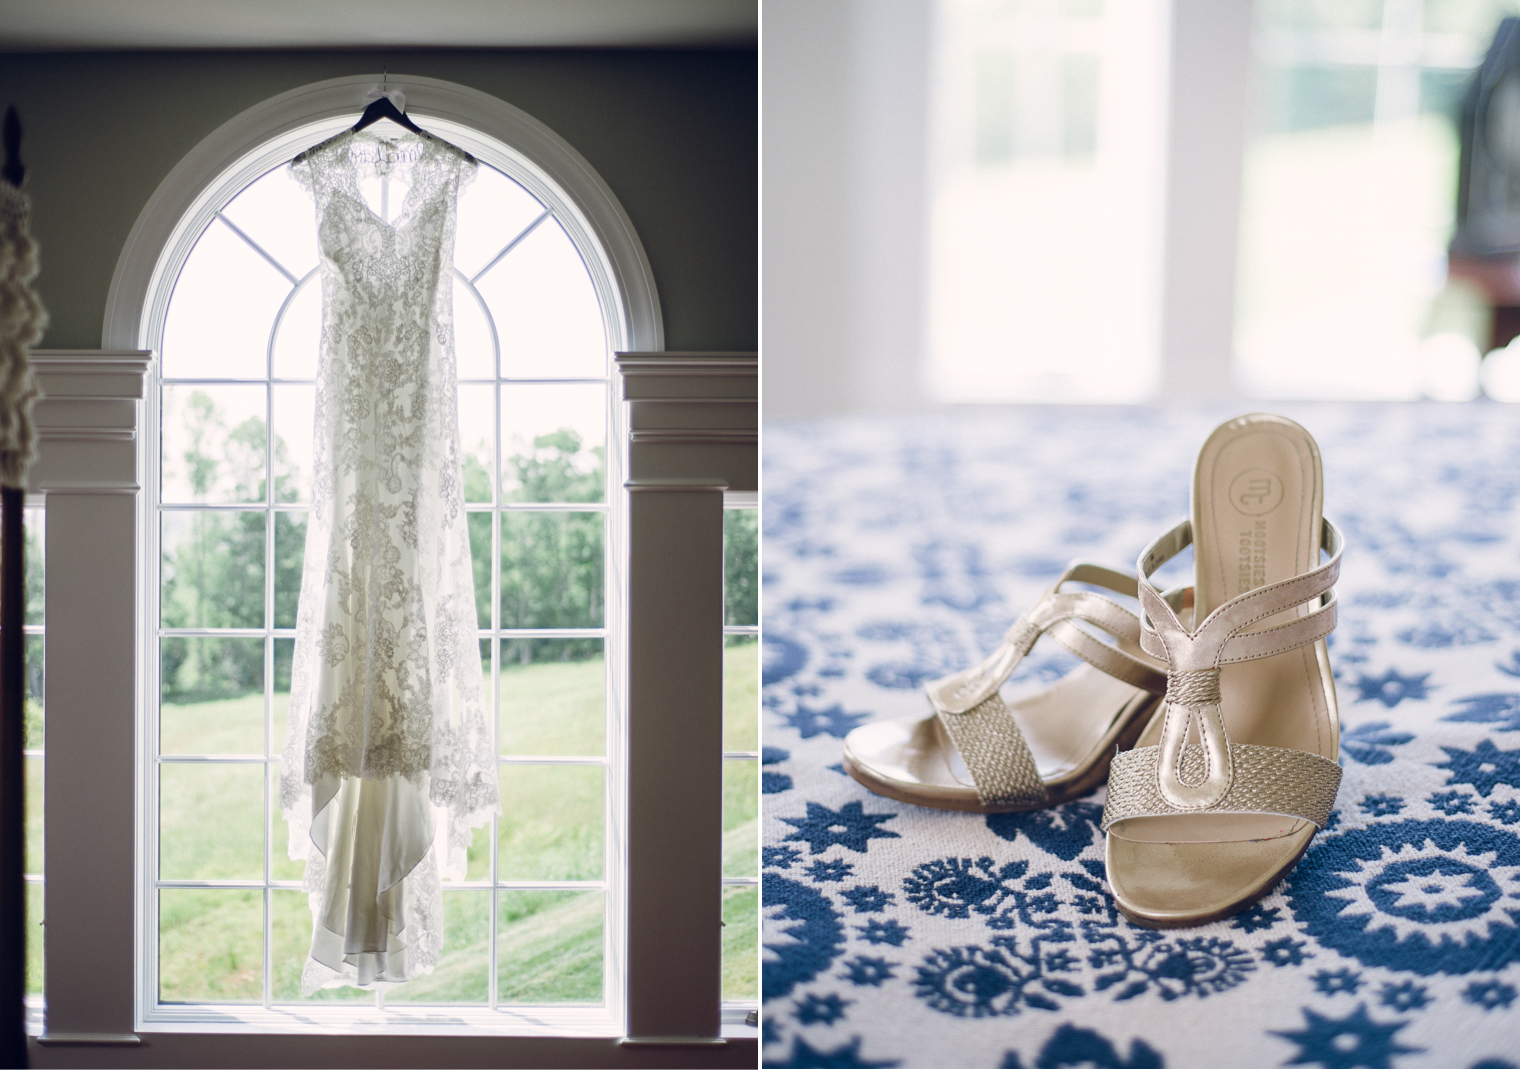 Wedding Details - Shoes and Dress